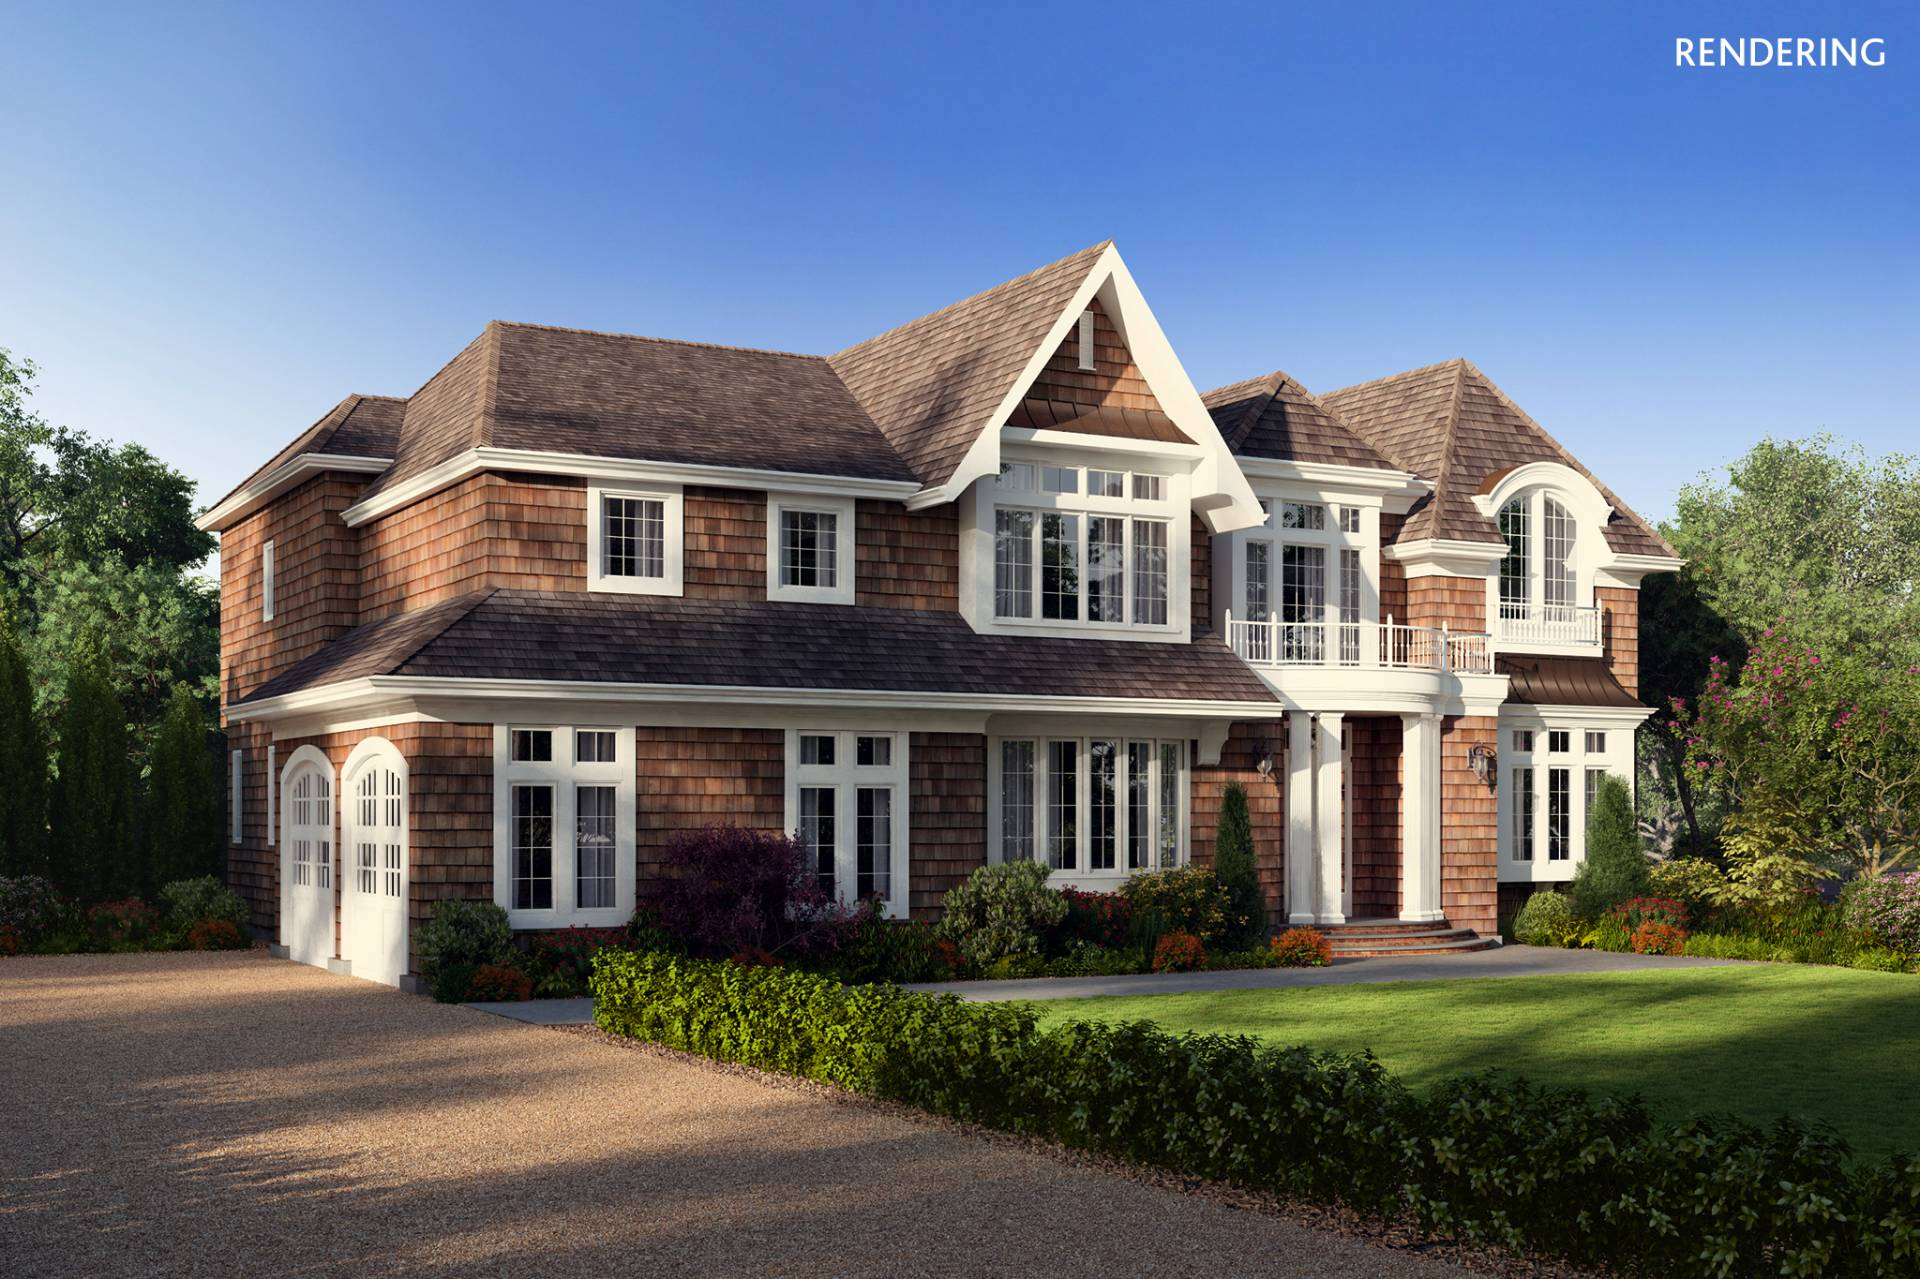 Single Family Home for Sale at The Manor At Bridgehampton's Barn & Vine. 87 Birchwood Lane, Bridgehampton, New York